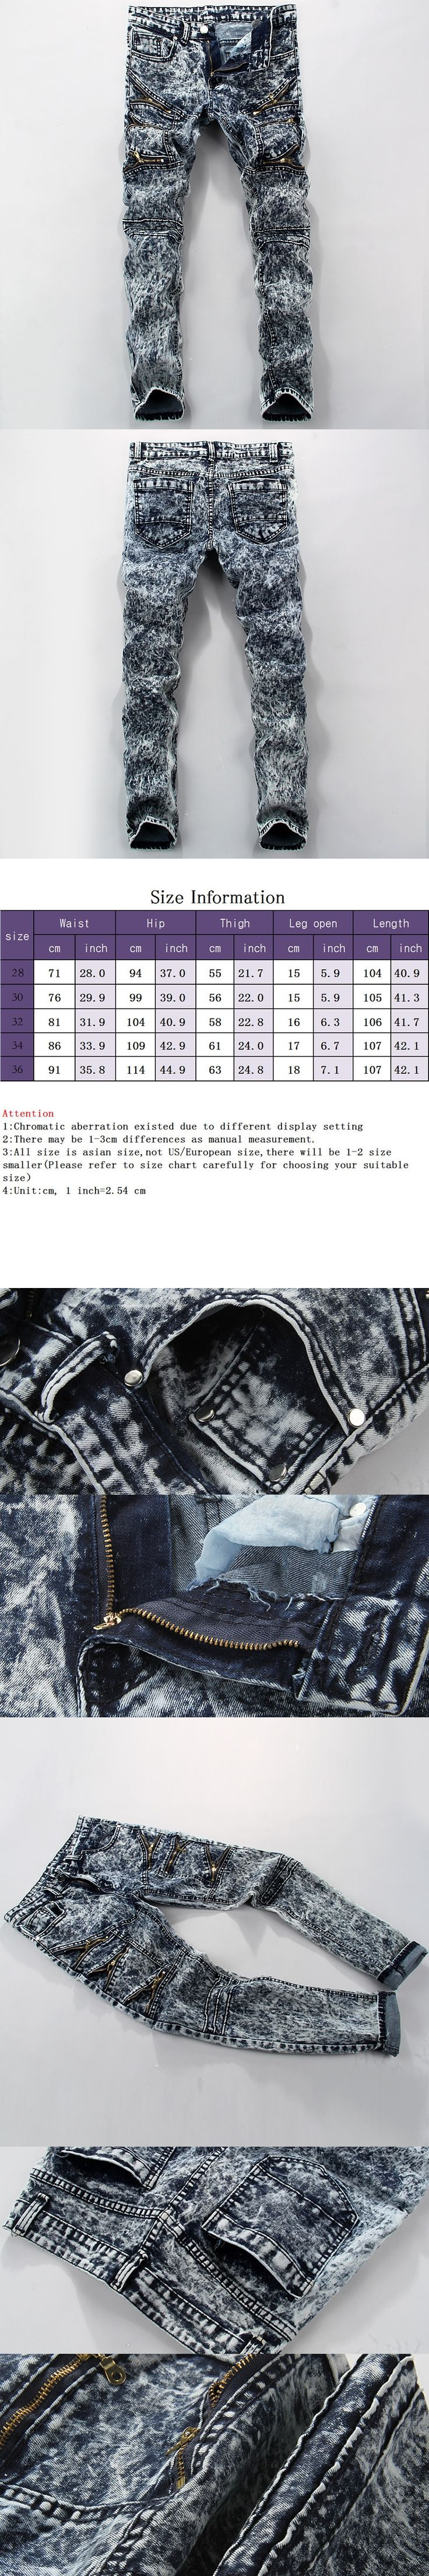 Dropshipping hip hop jeans personality popular clothing style printed patch mens jeans autumn winter men straight  trousers